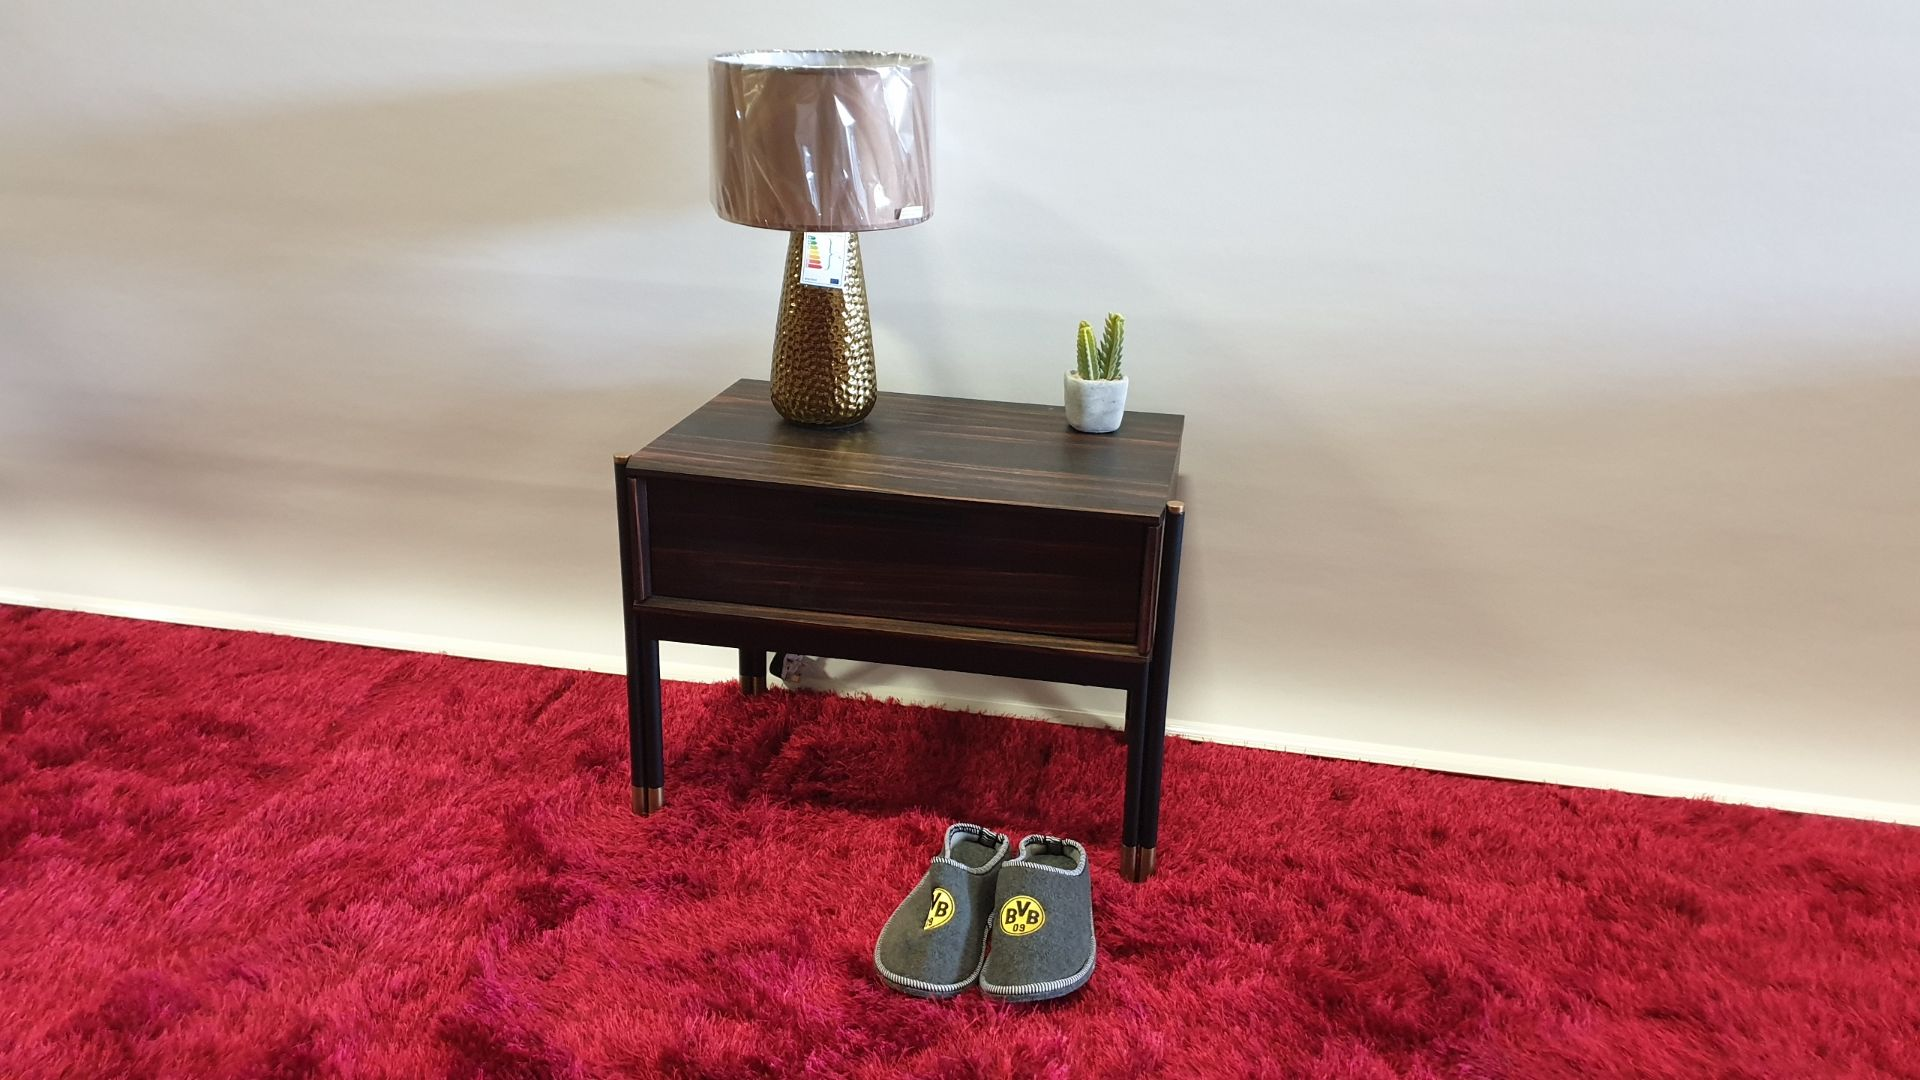 Lot 17 - BRAND NEW WOODEN AND ROSE GOLD SOFT CLOSE BED SIDE TABLE 637 X 395 X 480MM RRP £239